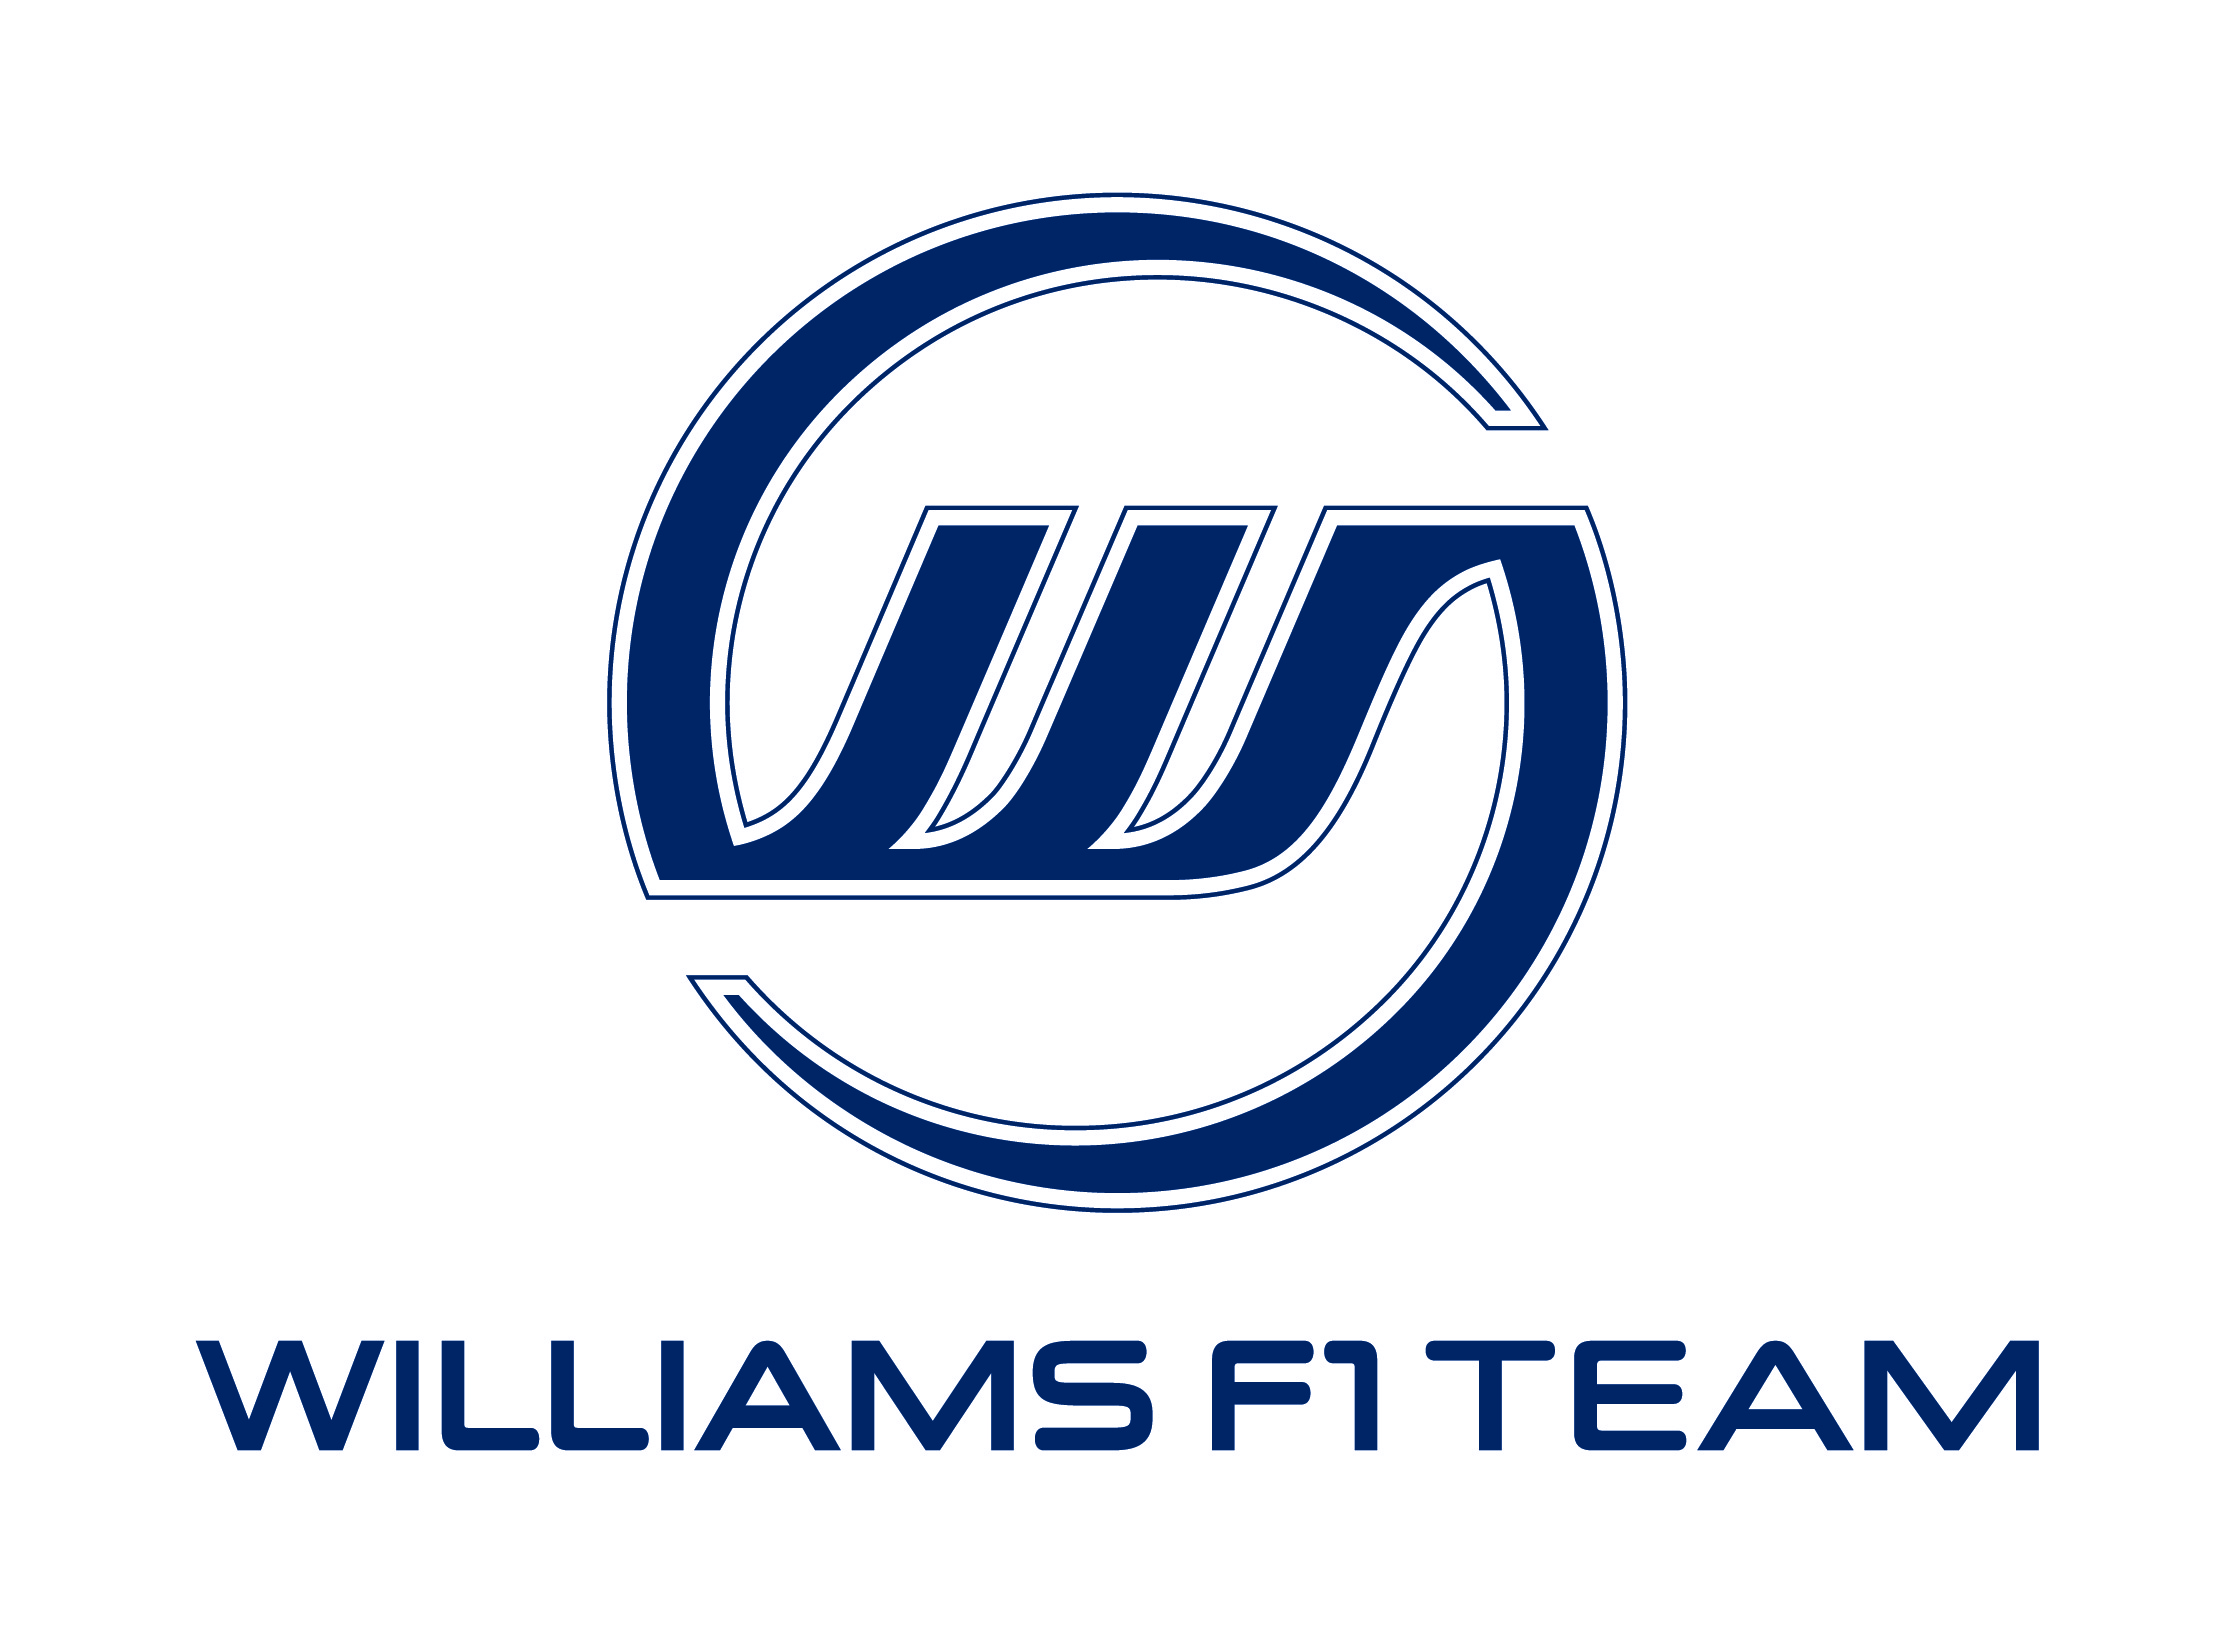 williams-f1-team